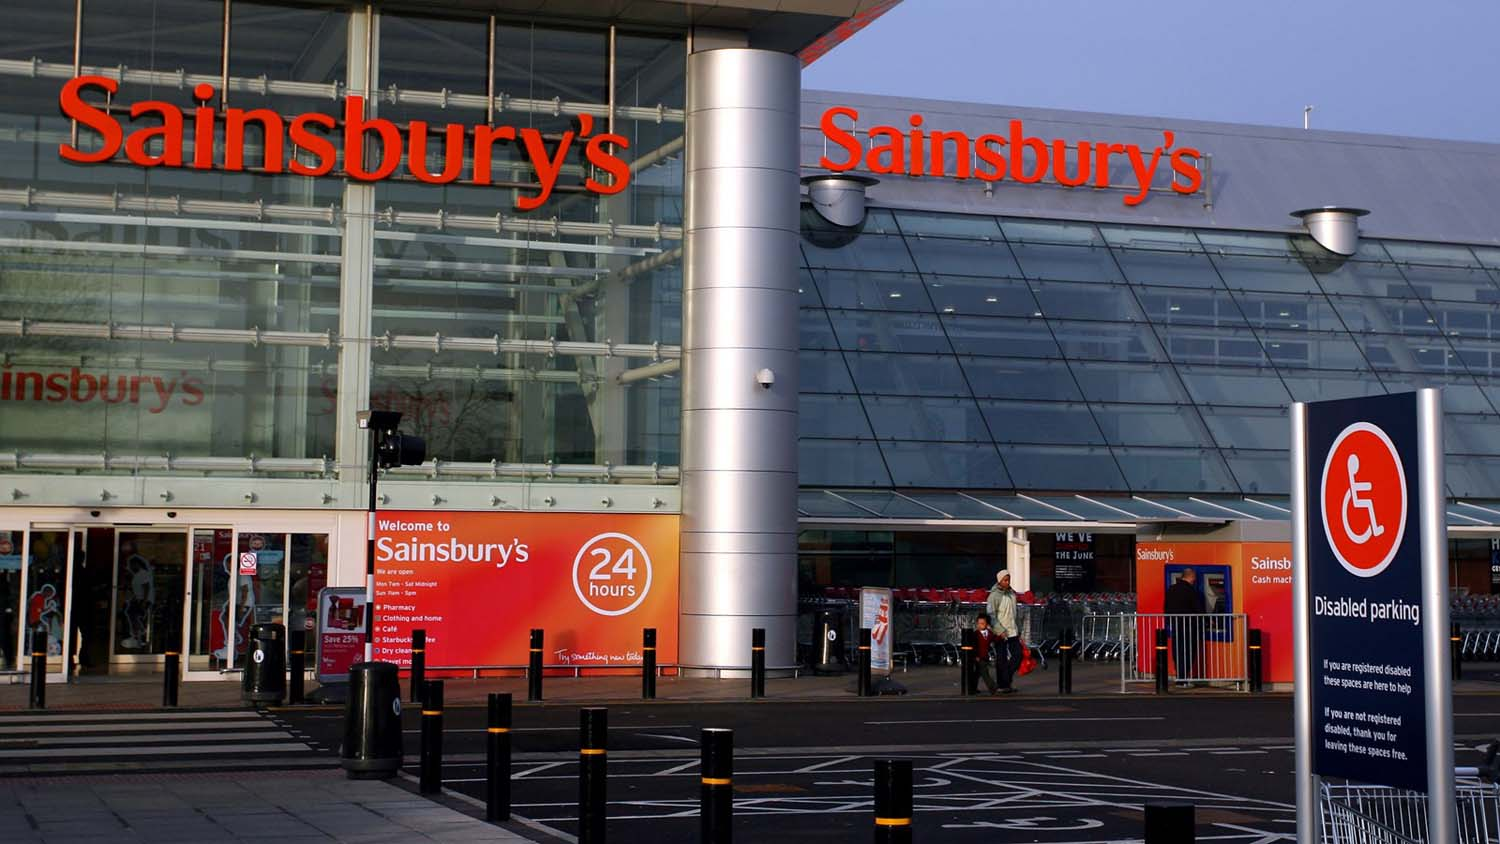 Sainsbury's and Asda merger must not 'squeeze' small suppliers